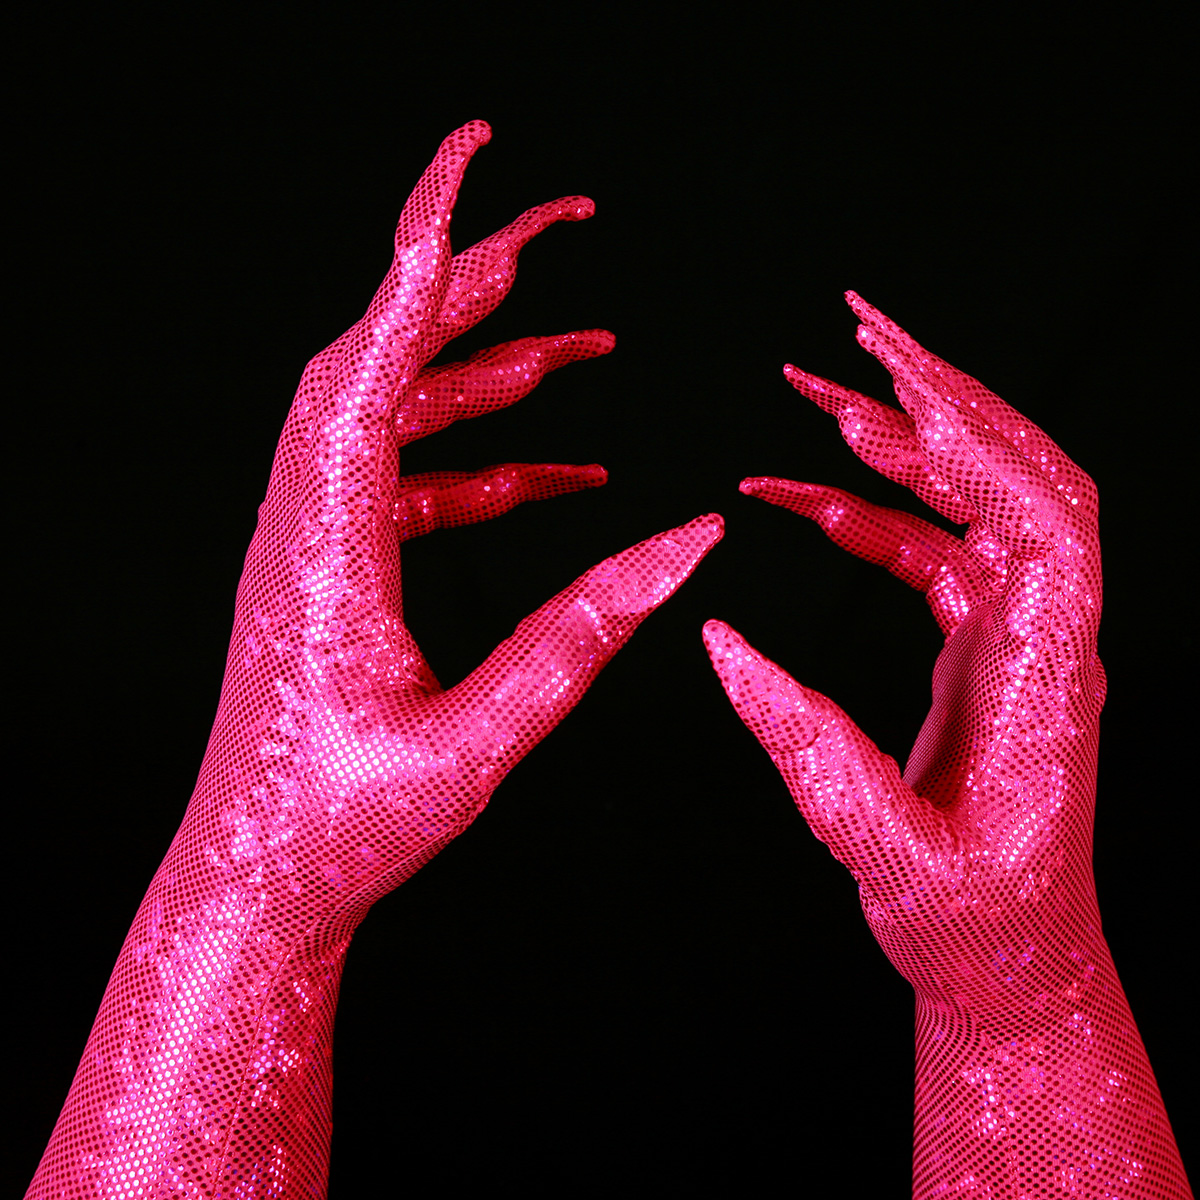 Two hands are shown wearing sparkly hot pink gloves, with built in claws.